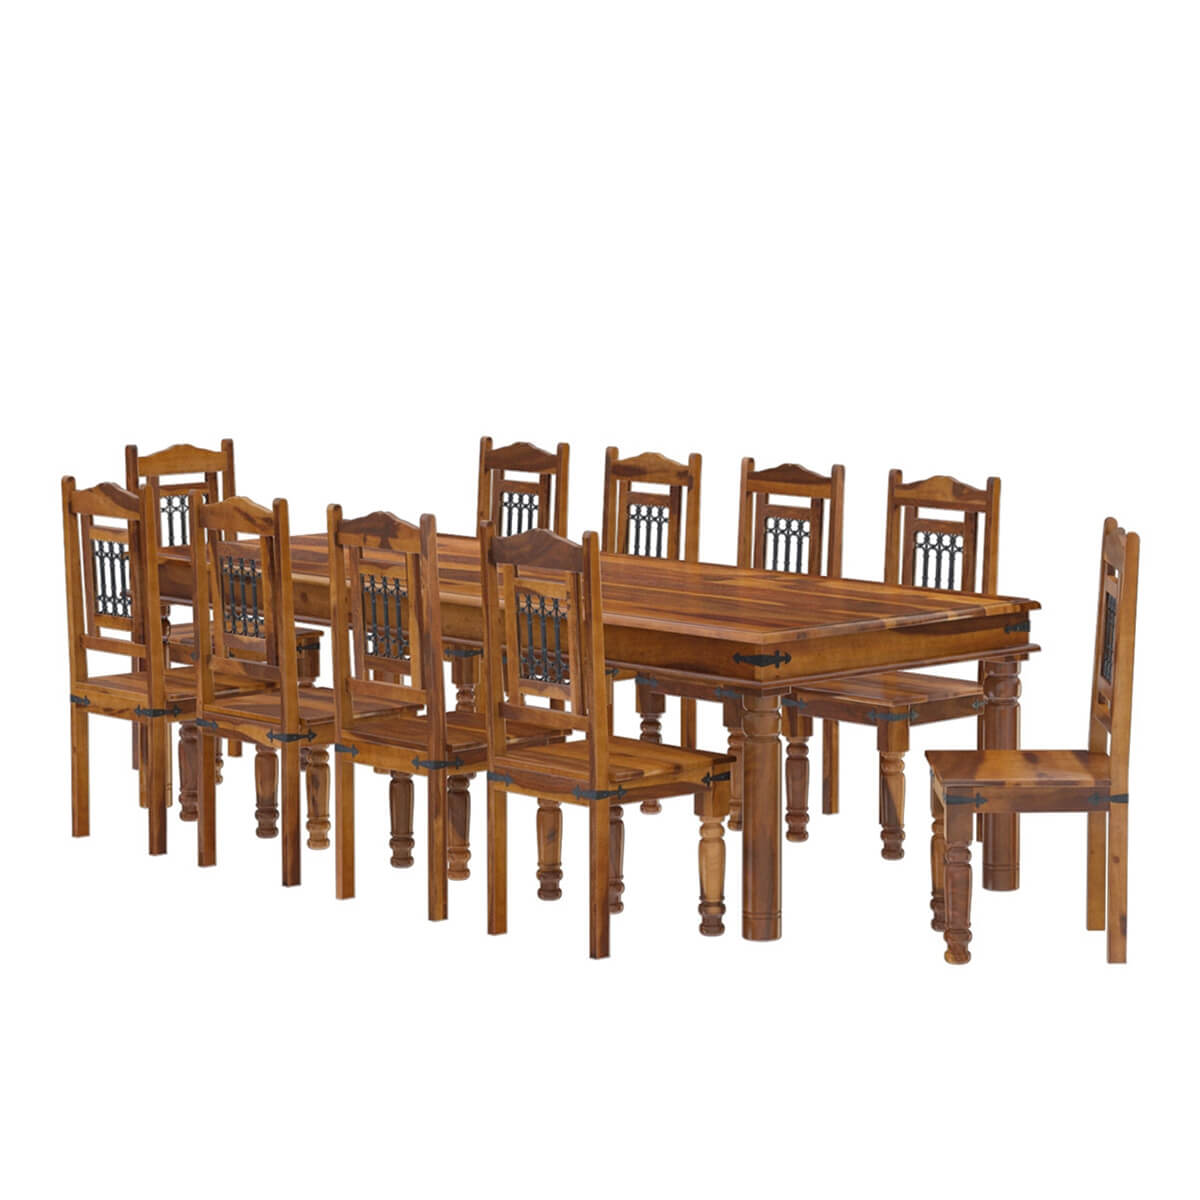 Large dining room set 28 images rustic lincoln study for Large dining room sets